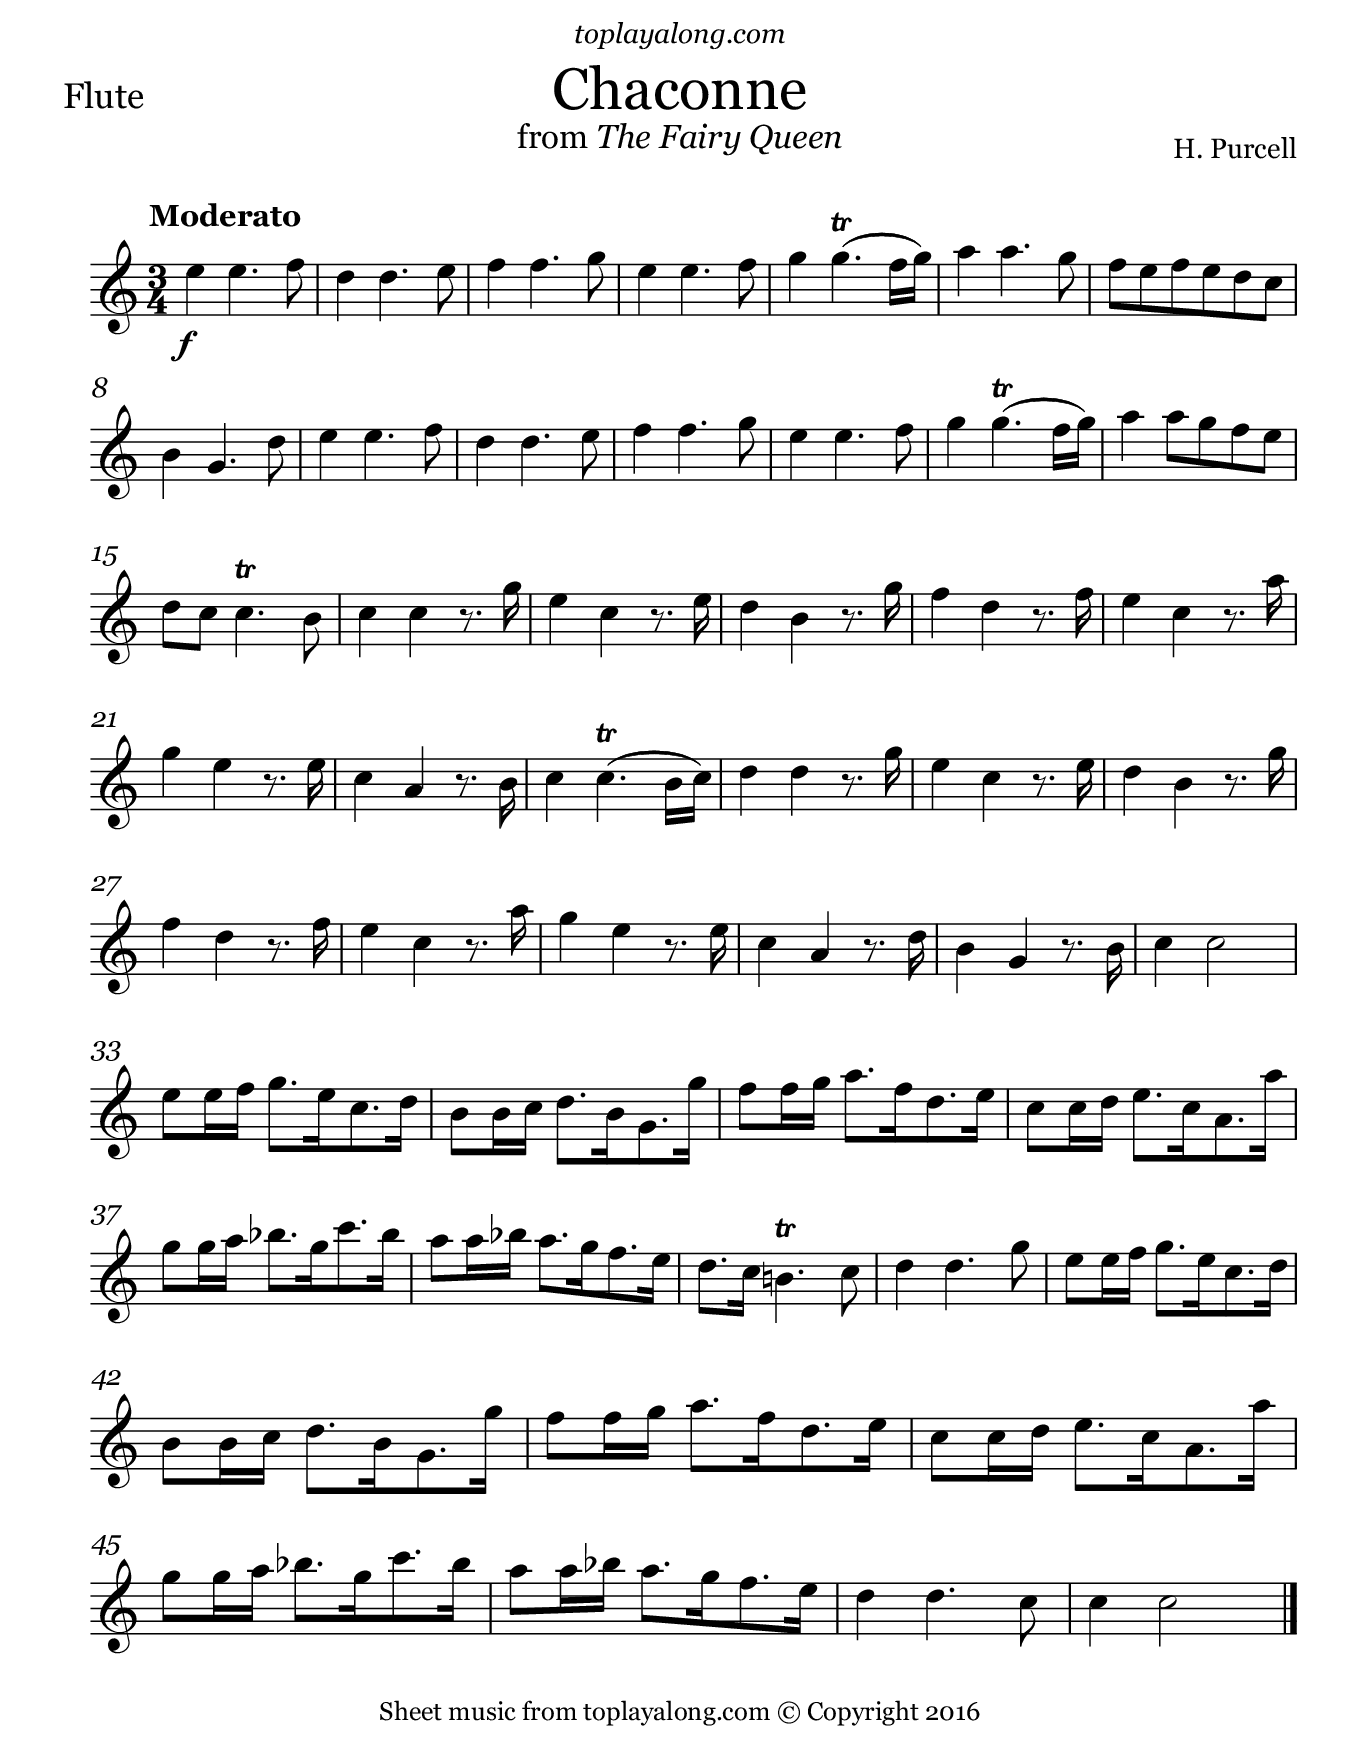 Chaconne from The Fairy Queen by Purcell. Sheet music for Flute, page 1.